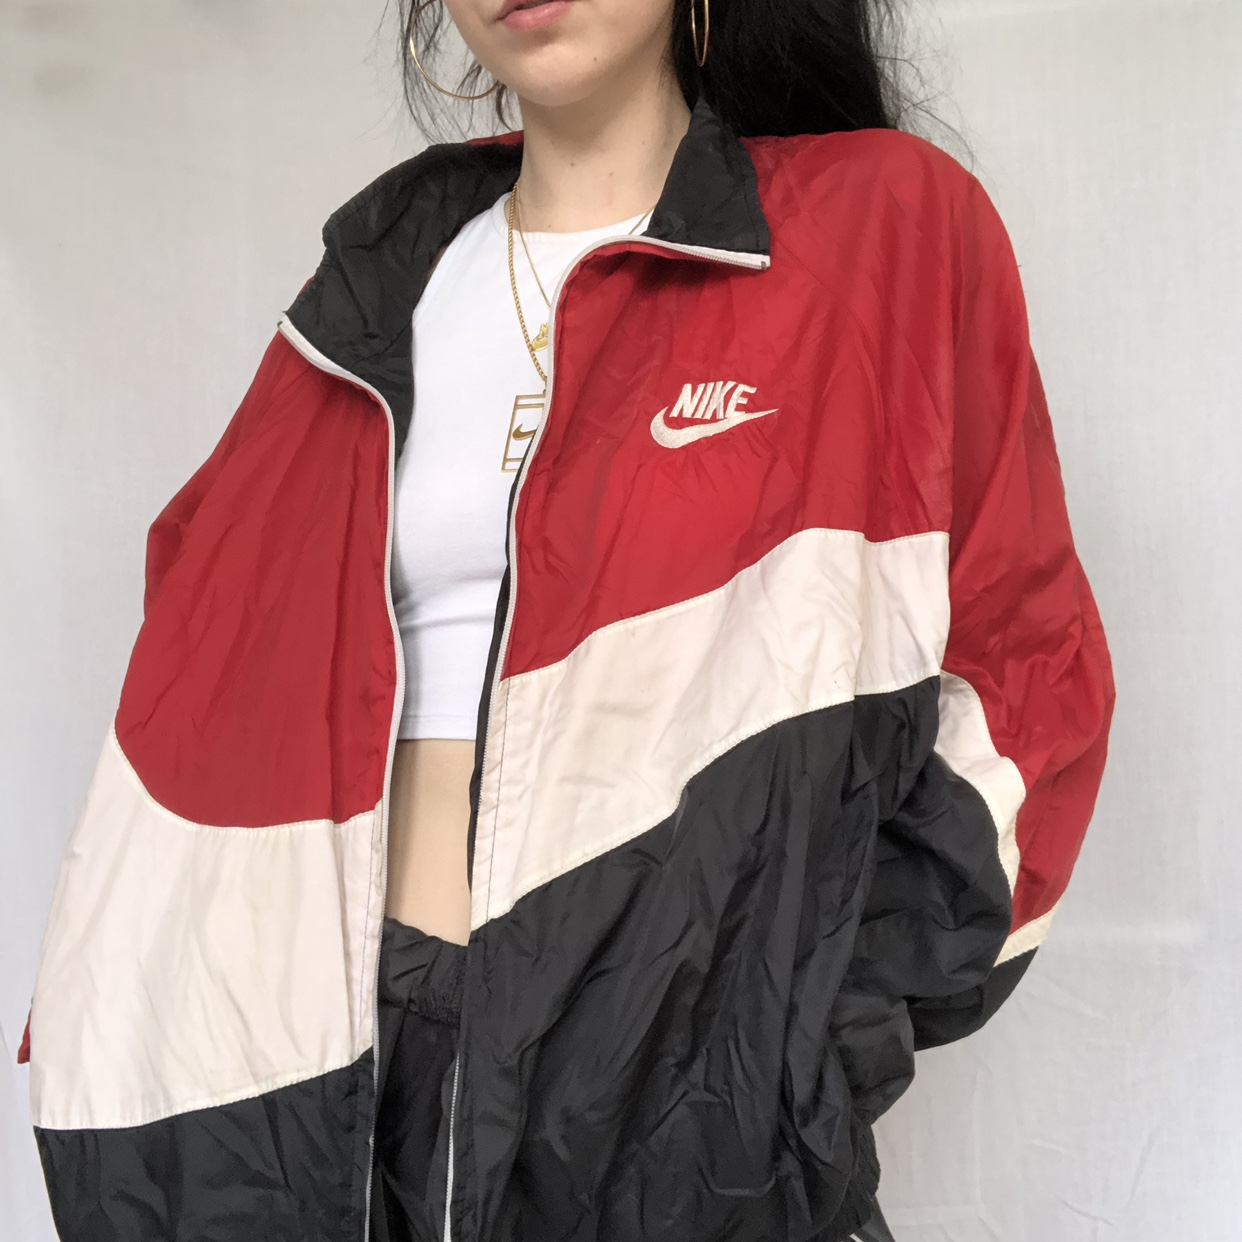 Vintage Nike red, black and white